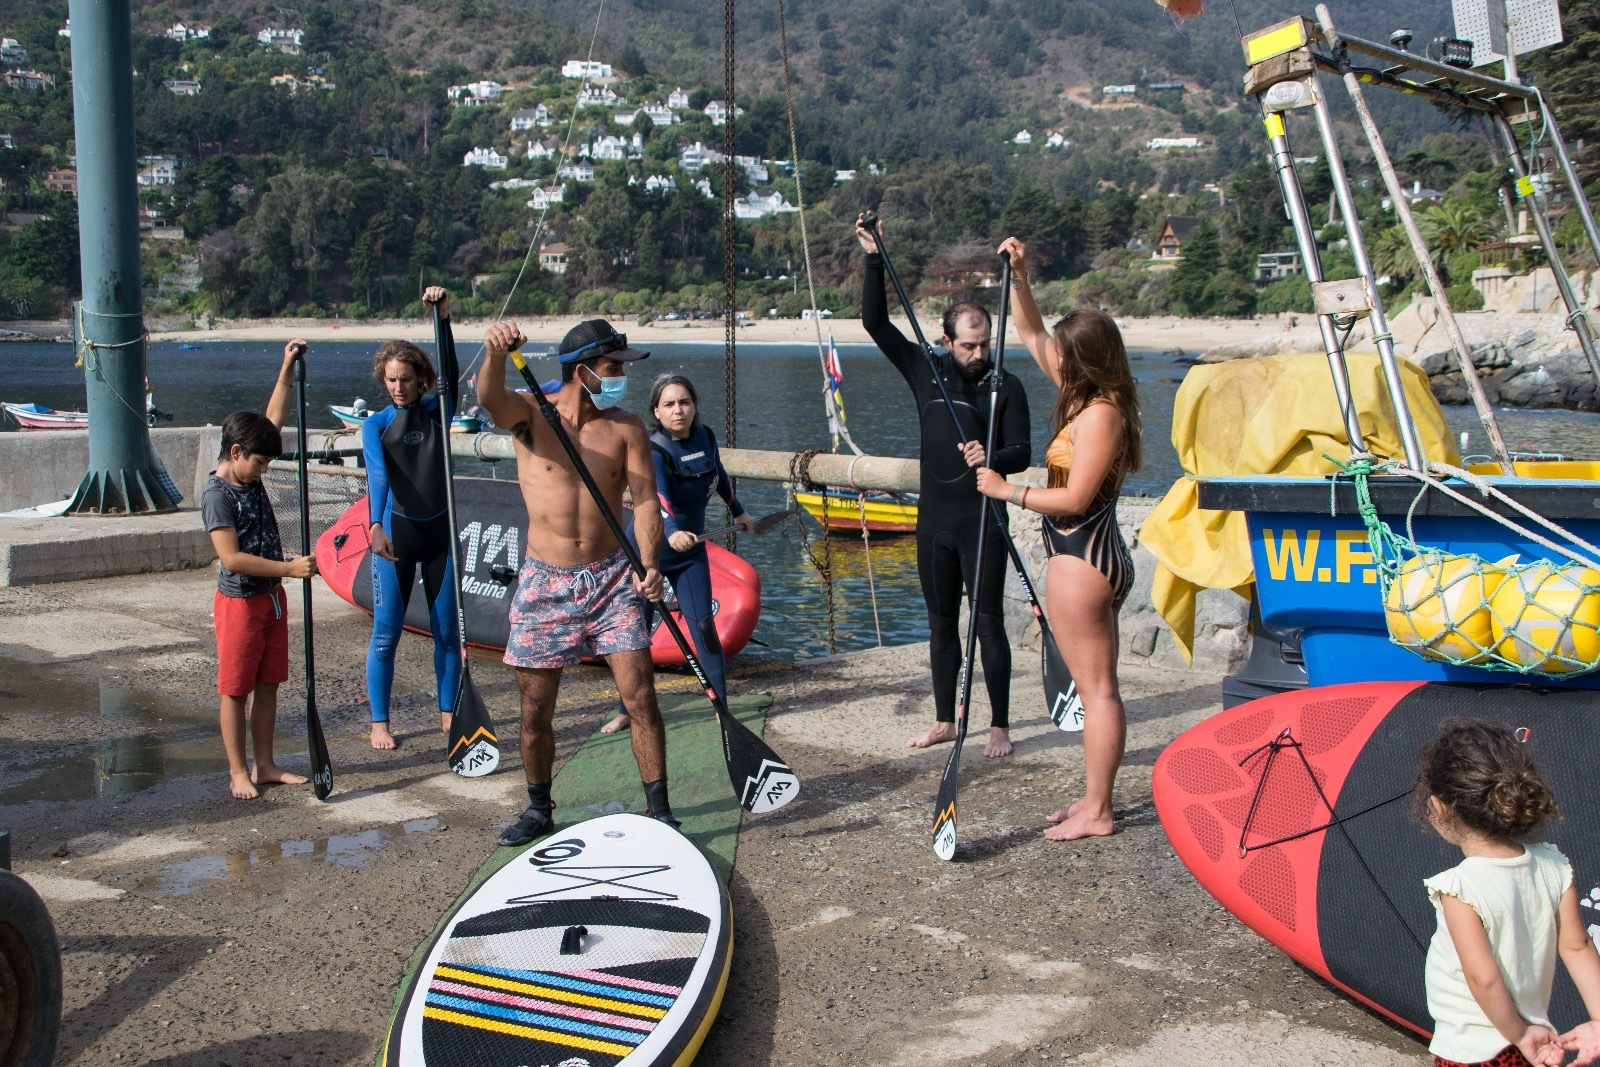 Clases de SUP (Stand Up Paddle) Zapallar